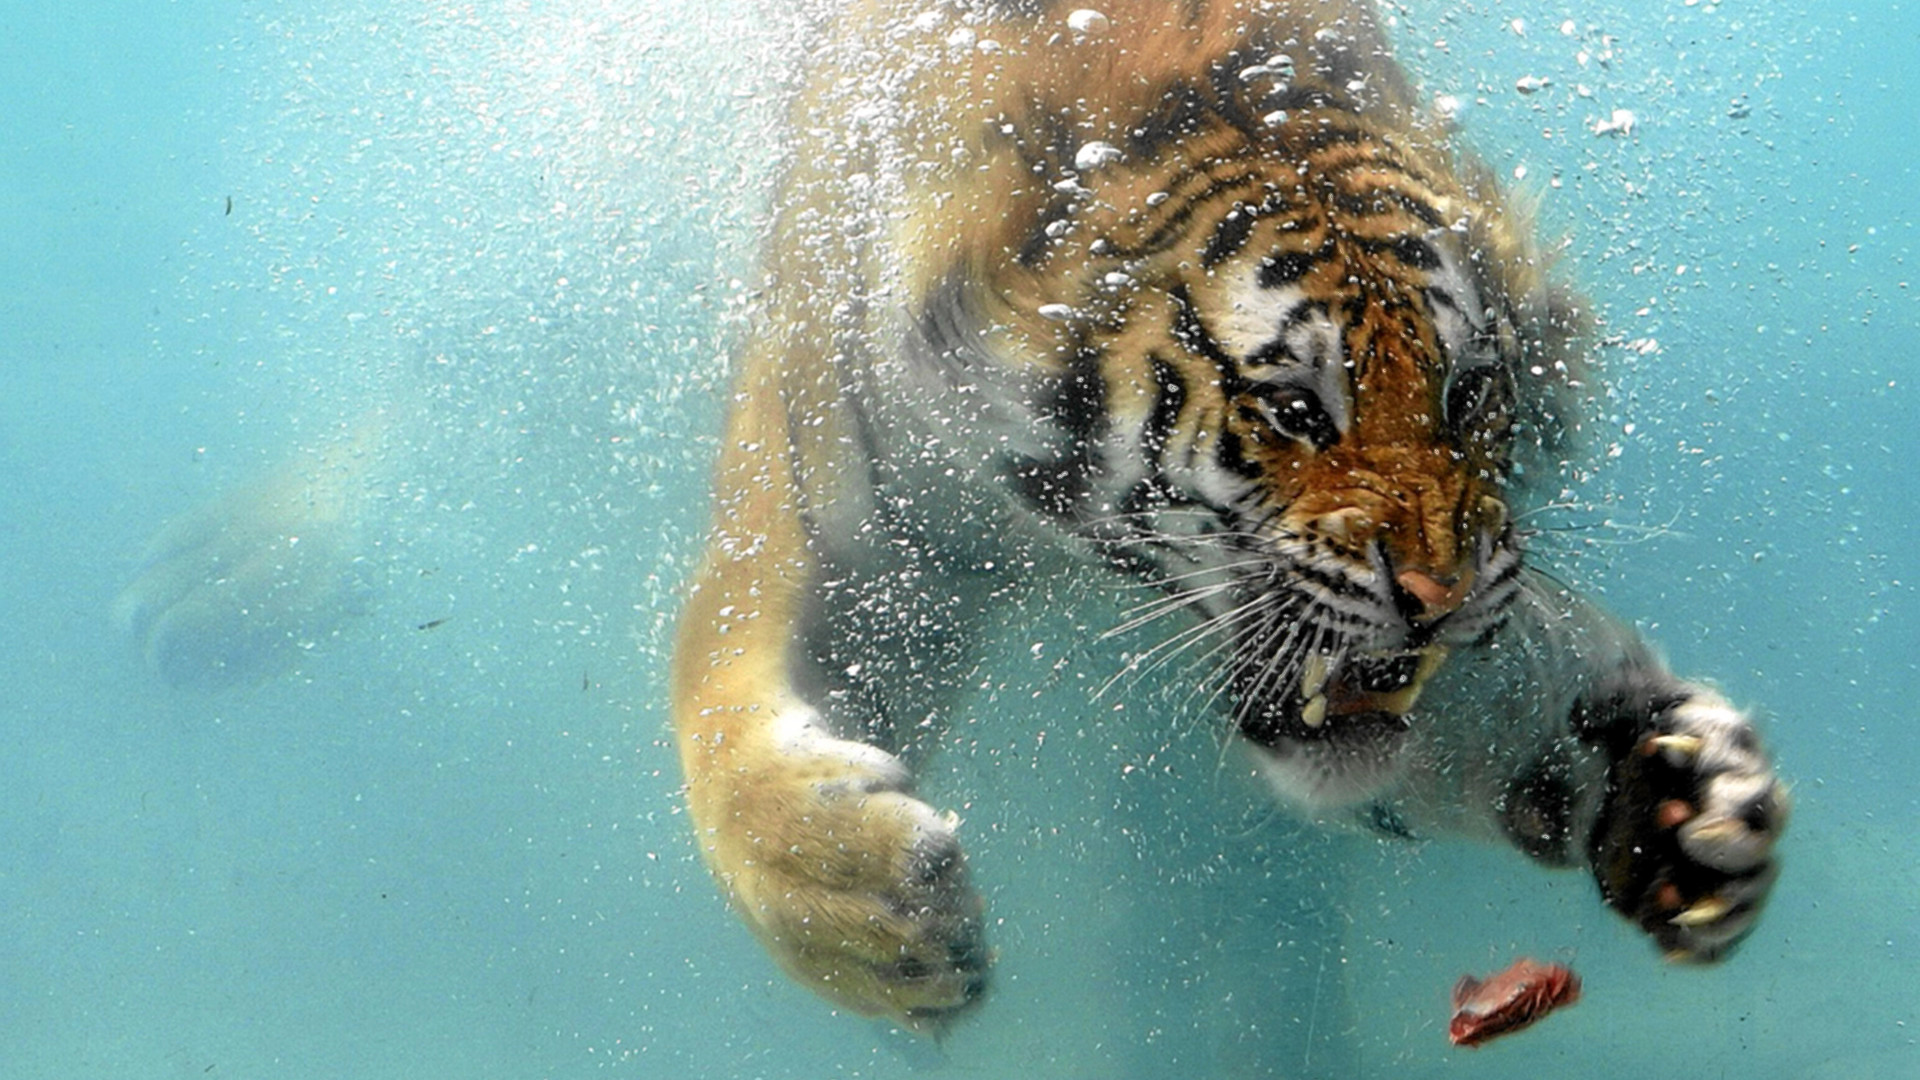 Swimming Tiger HD Wallpaper in Full HD from the Animals category.